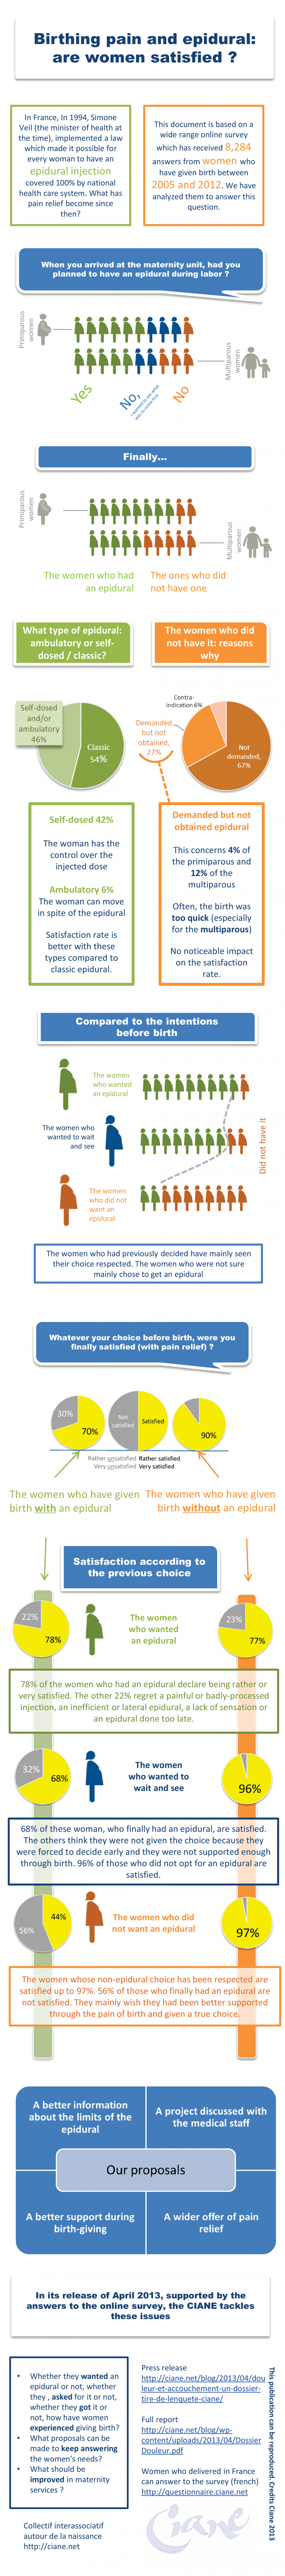 Birthing pain and epidural Infographic